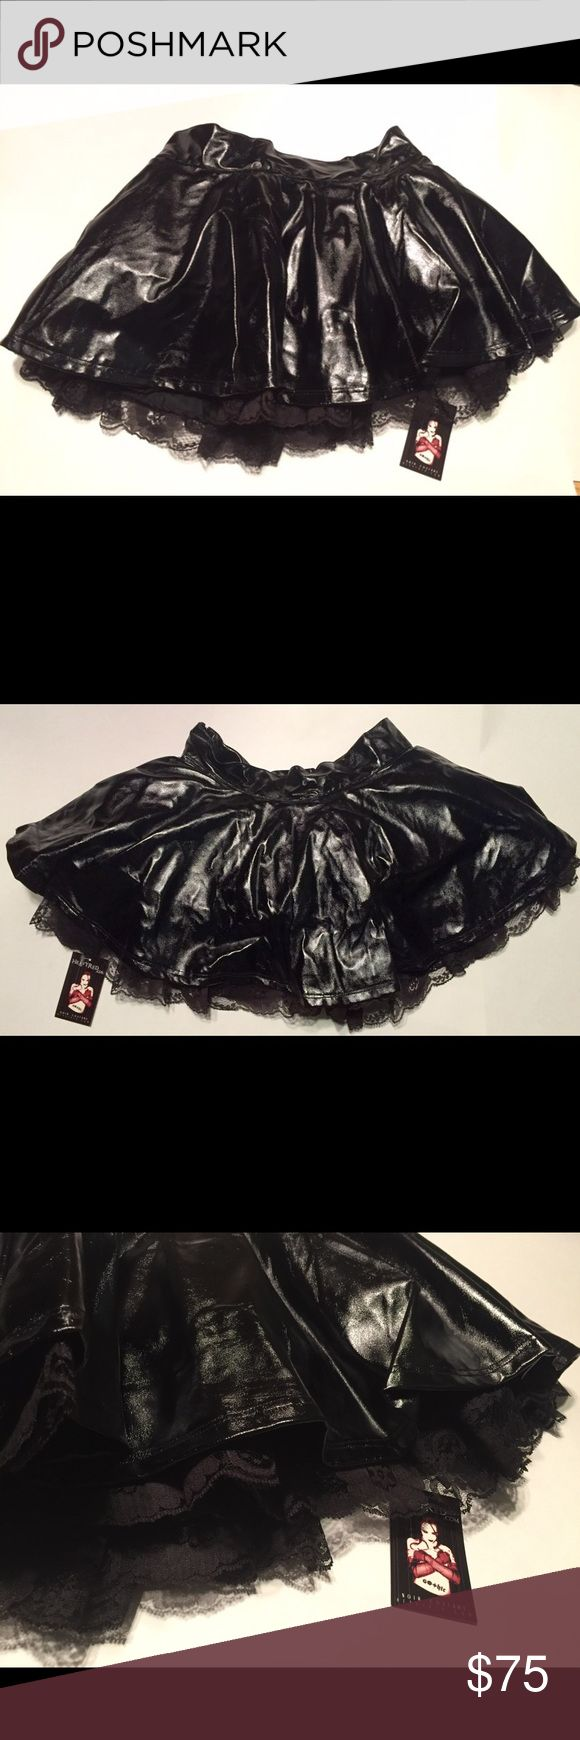 NWT Vintage Heavy Red Gothic Mini Ruffle Skirt S Never worn, circa Heavy Red Gothic early days (early 2000's)- tag on. This has been in storage, & is begging for a new goth home! This is a great piece, & like all HR items, the quality is killer.  Vegan leather top layer with ruffles & lace, hidden rear zip. Style number is PS-10, made in USA. HAND WASH. 14.5 in across waistband. 14-14.5 length. Fluffy, flouncy & uber sexy for the fetish cosplay Lolita club goth!  More items of a similar…